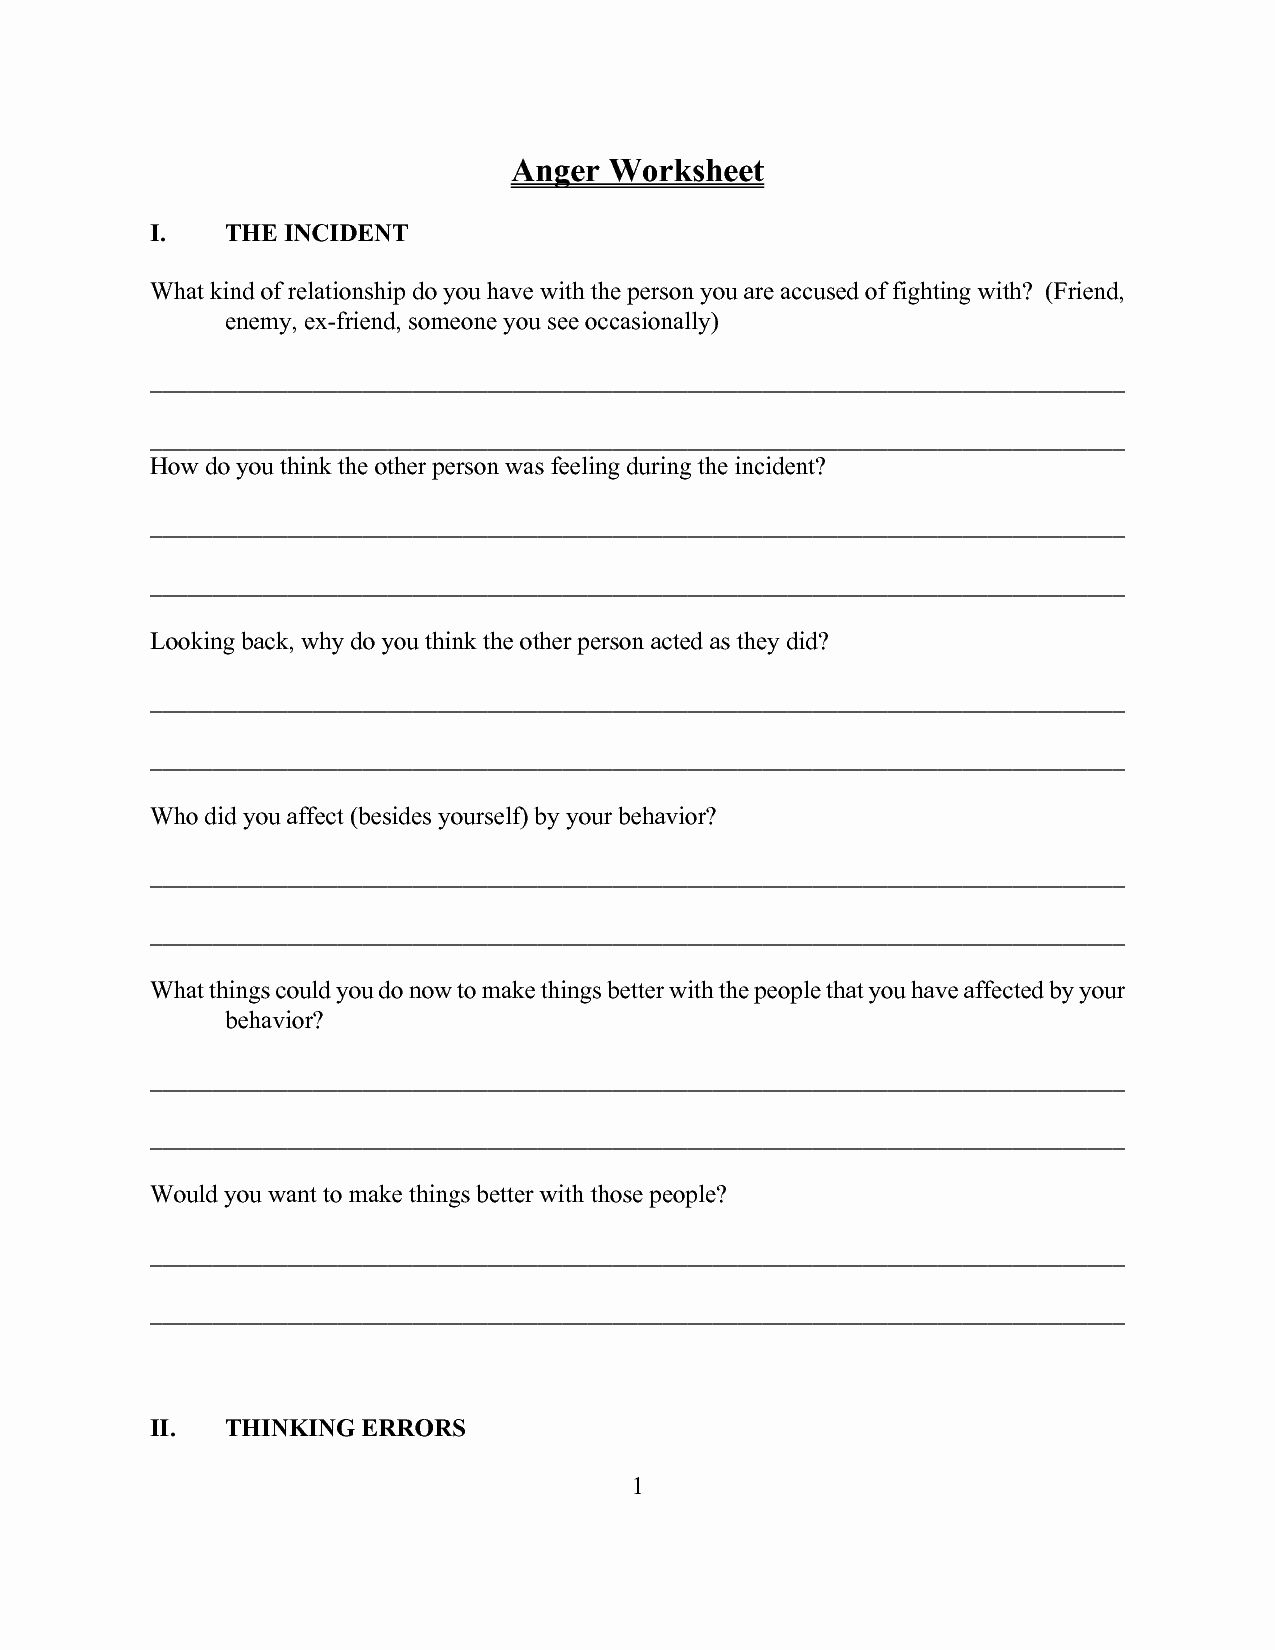 Anger Management Worksheet For Teens Luxury 10 Best Of Anger Management Worksheets Fre Anger Management Worksheets Anger Worksheets Anger Management Activities